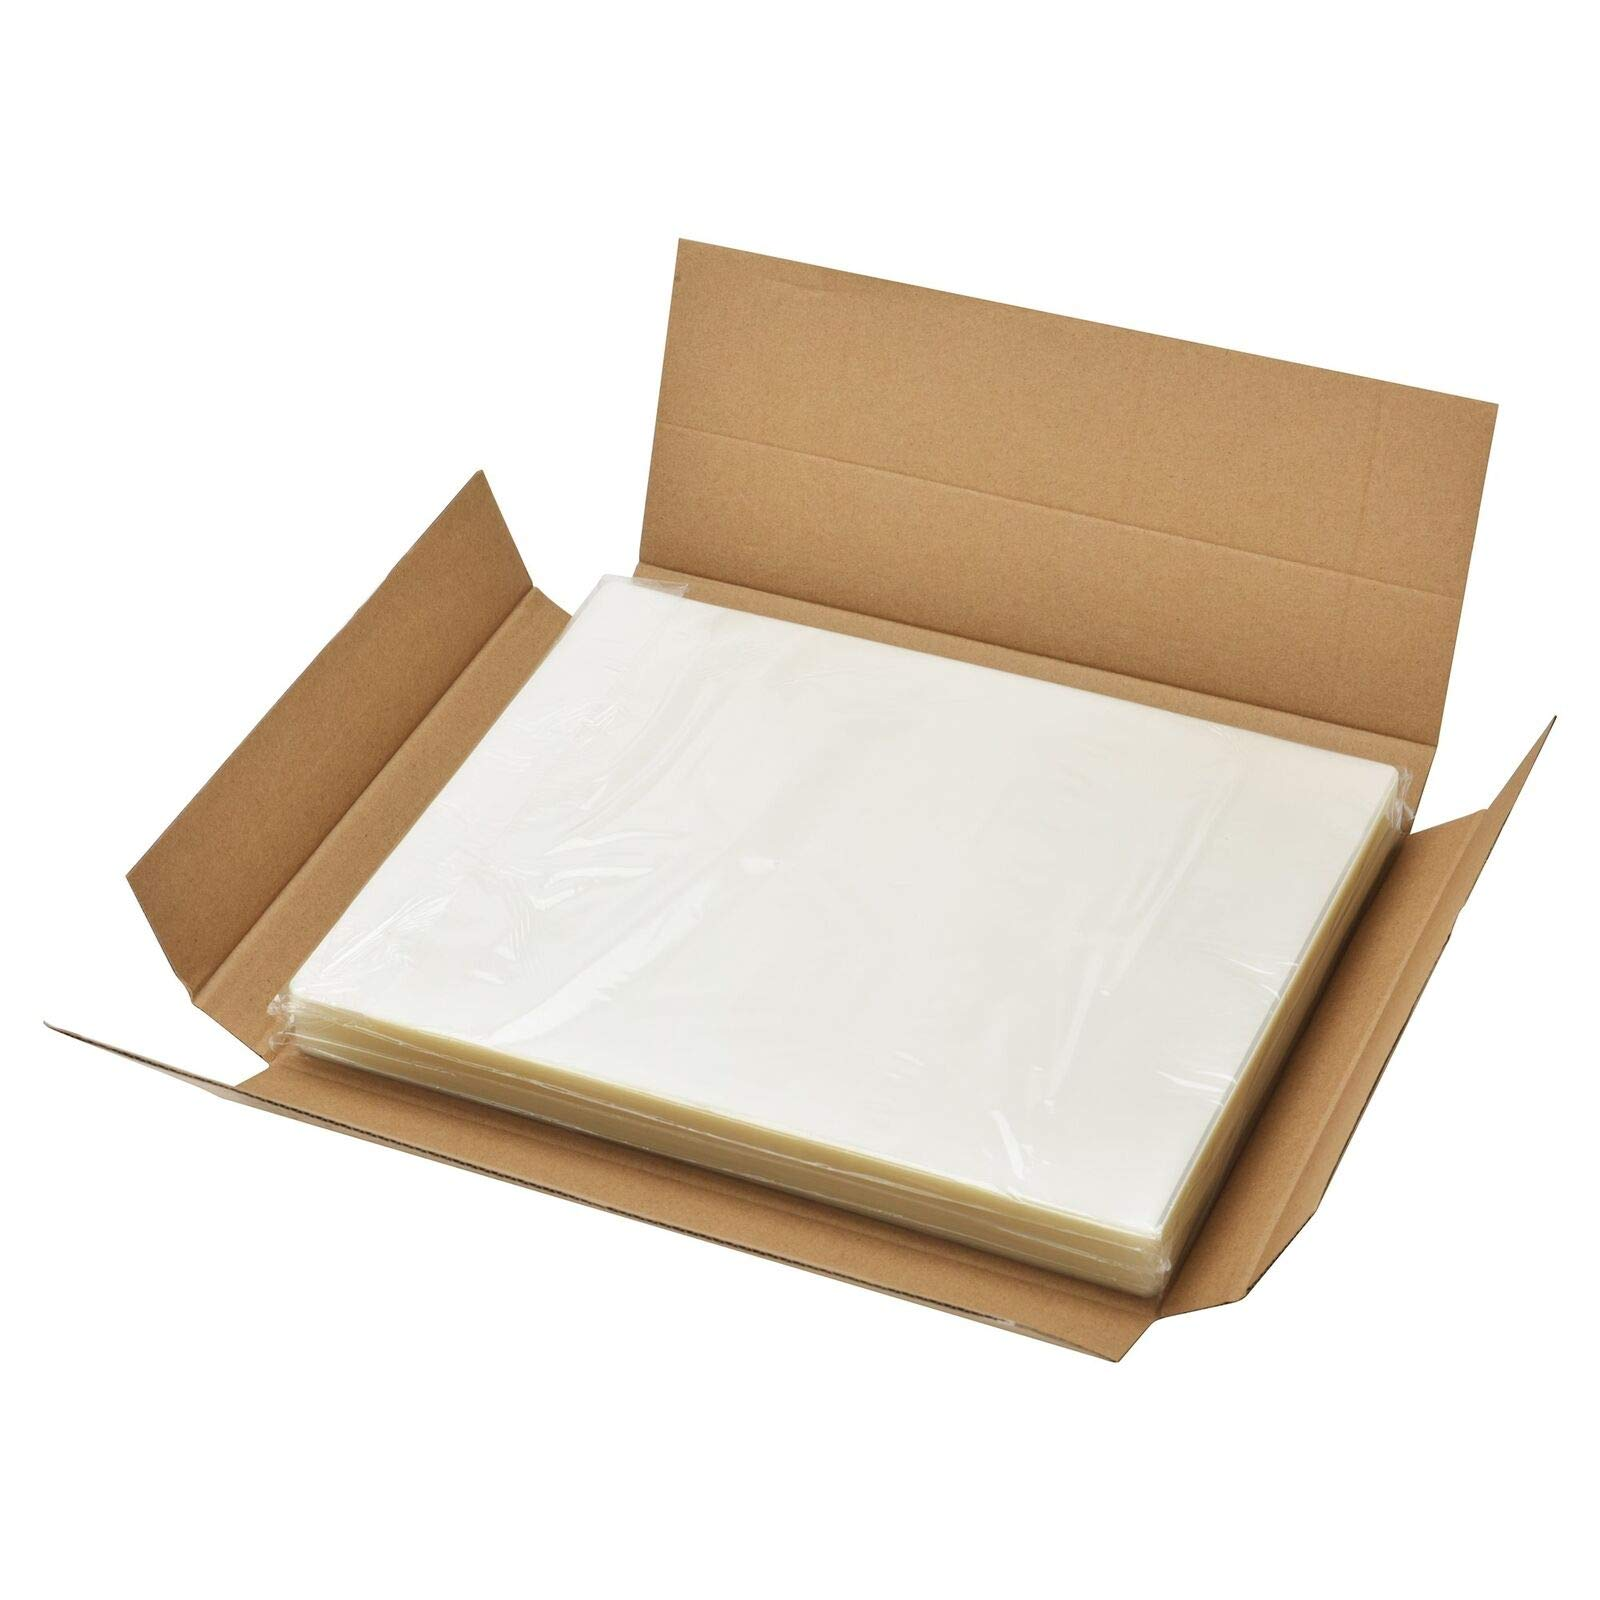 3 mil Thick Letter Size Thermal Laminating Pouches 9 x 11.5-Inches 2000-Pack AM09 by Unknown (Image #2)